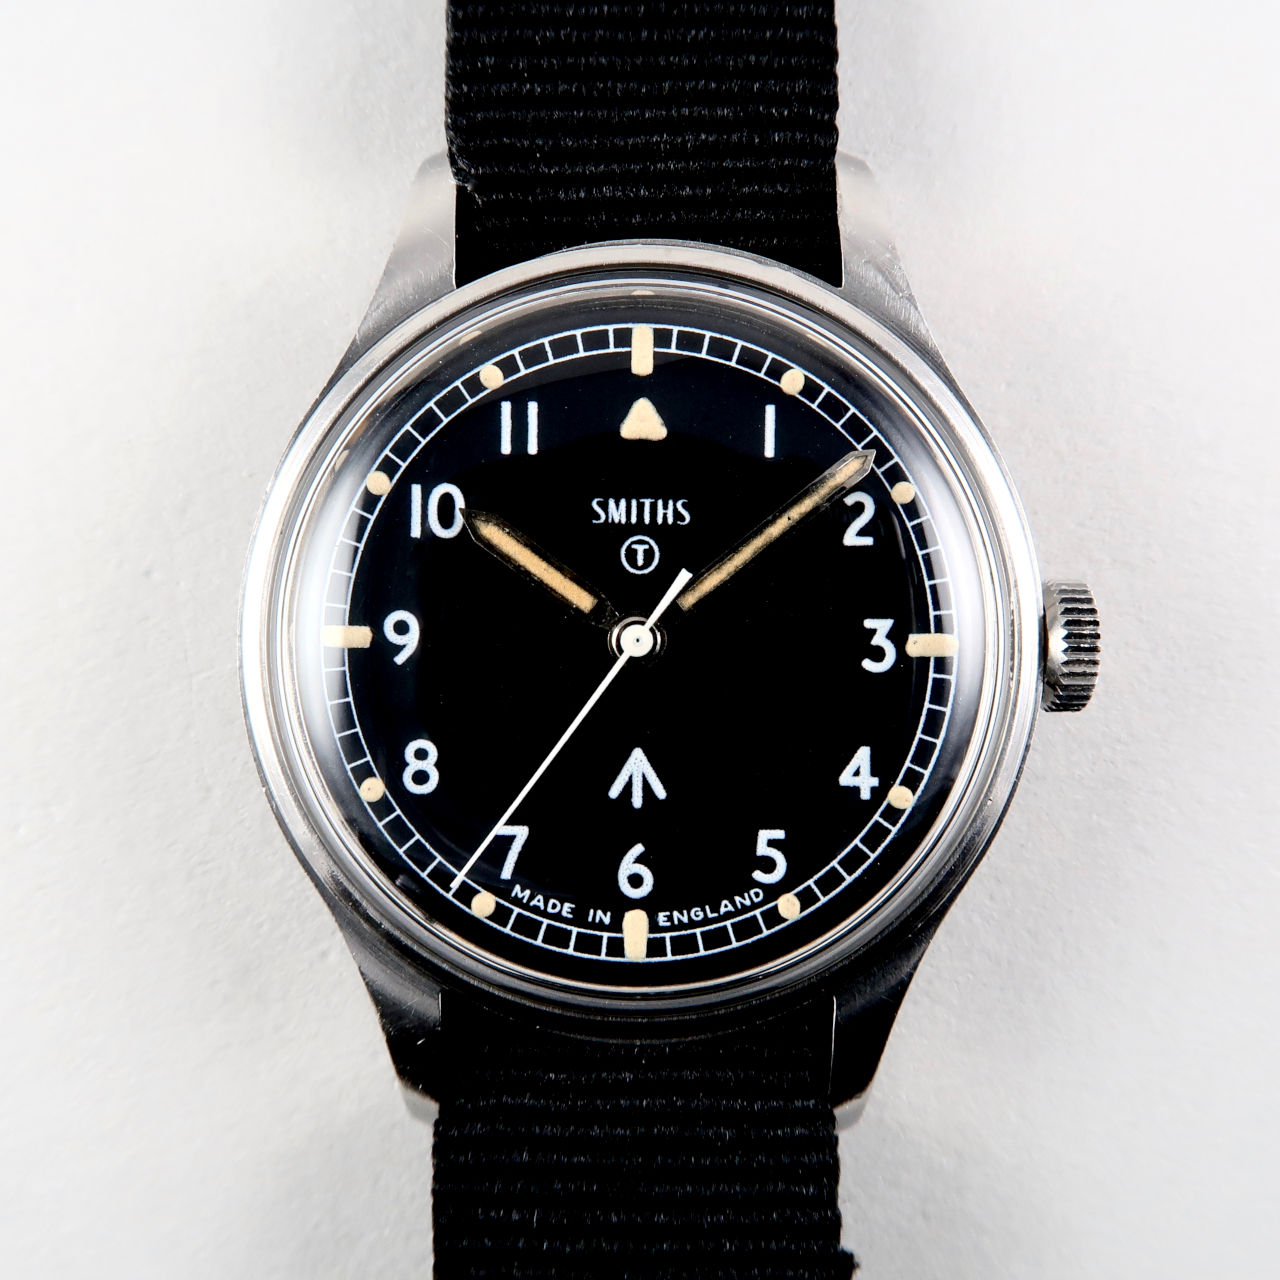 Smiths W10 military dated 1969 | steel manual vintage wristwatch with hack feature